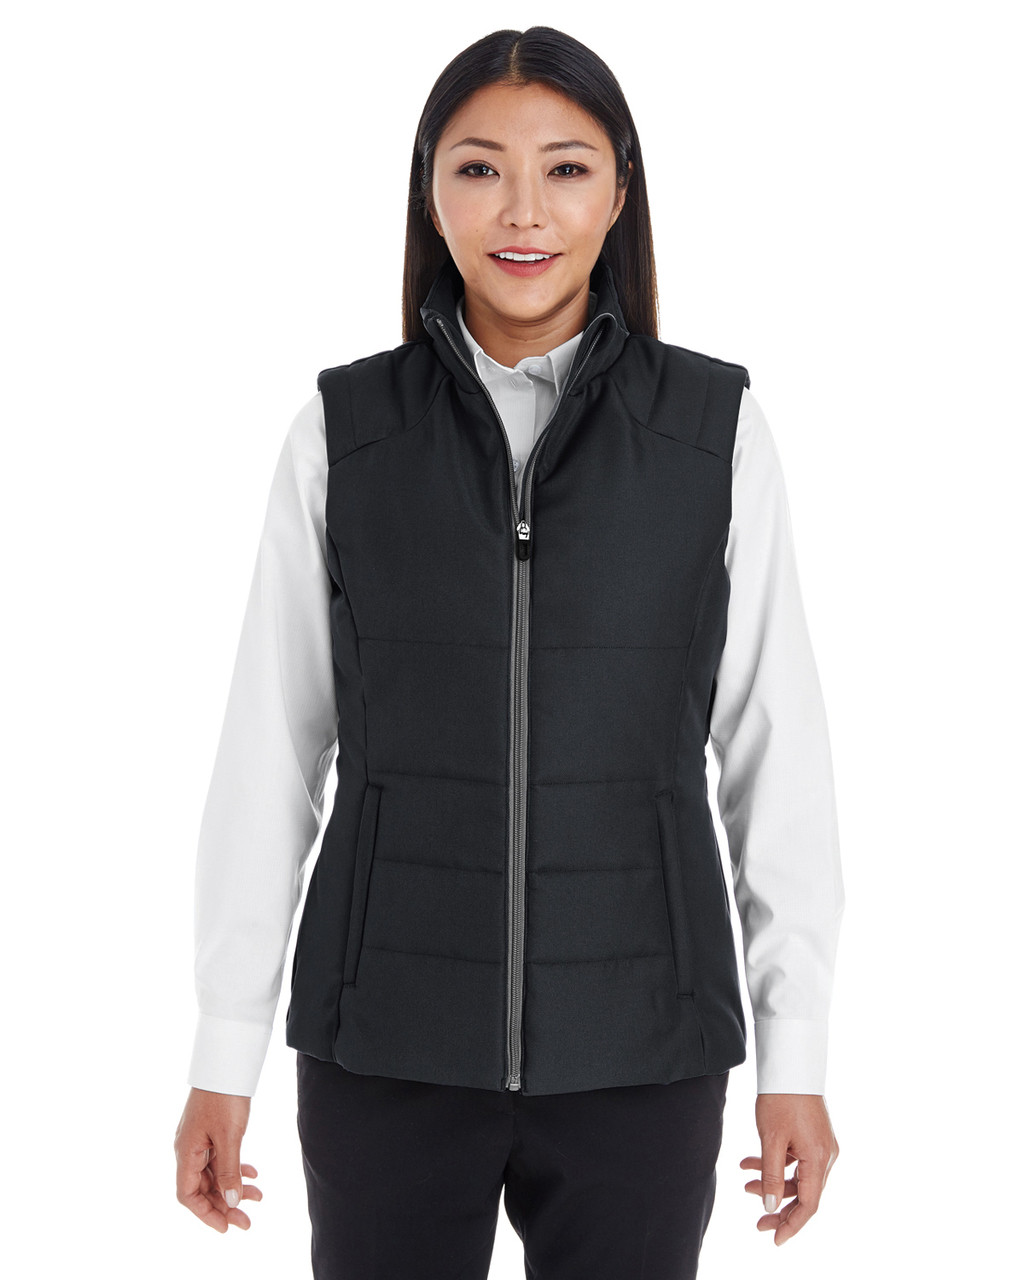 Black/Graphite - FRONT - NE702W Ash City - North End Ladies' Engage Interactive Insulated Vest Blankclothing.ca